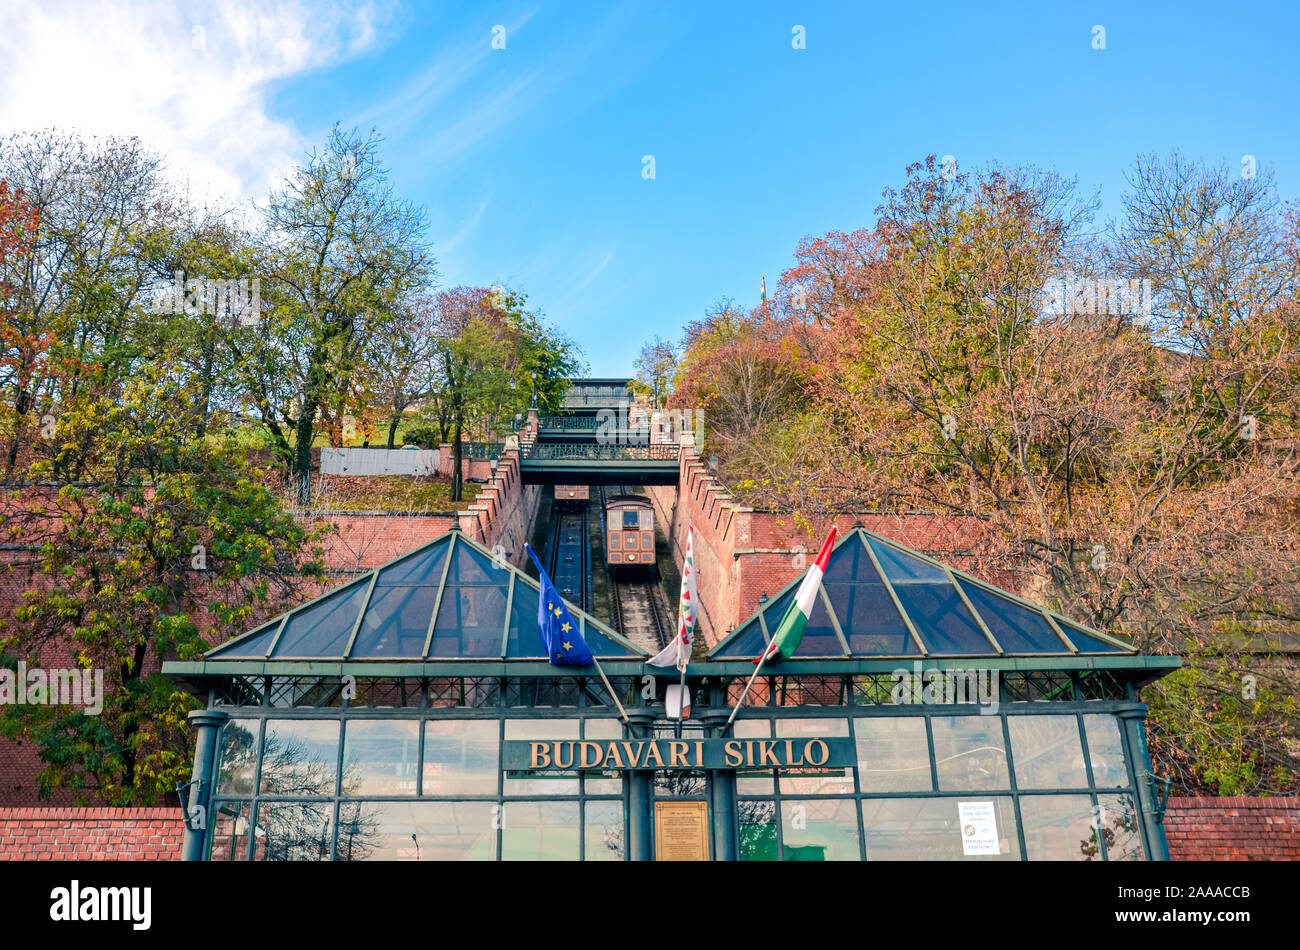 Budapest, Hungary - Nov 6, 2019: Cable car, public funicular train leading to the Buda Castle on the hill in the Hungarian capital. Tram tracks in the narrow corridor leading uphill. Transportation. Stock Photo